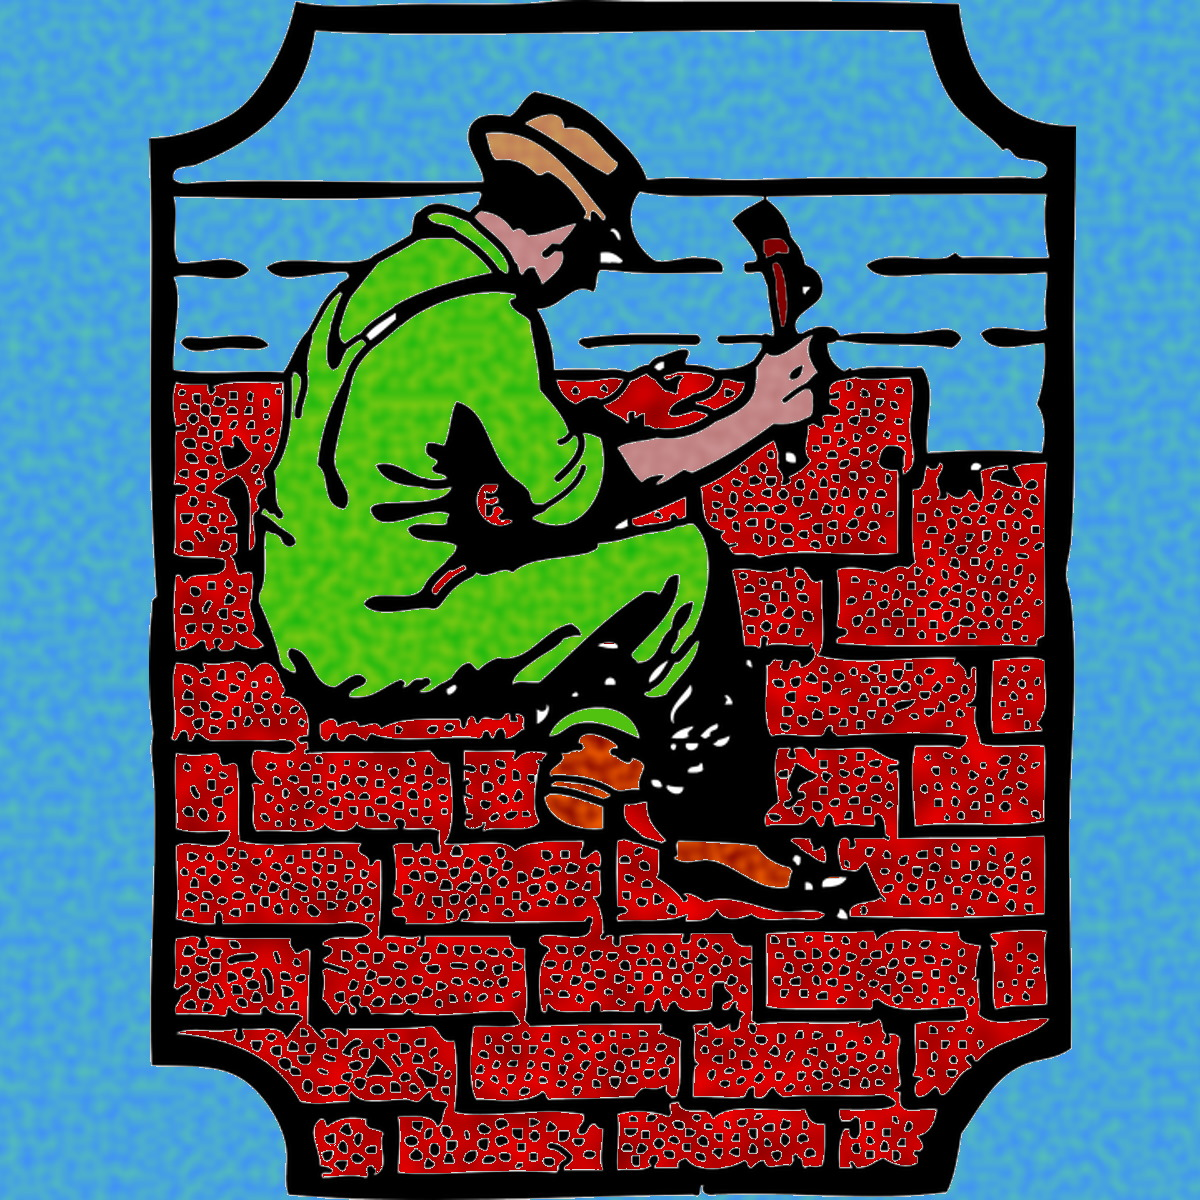 https://pixabay.com/vectors/bricklayer-bricklaying-mason-28805/